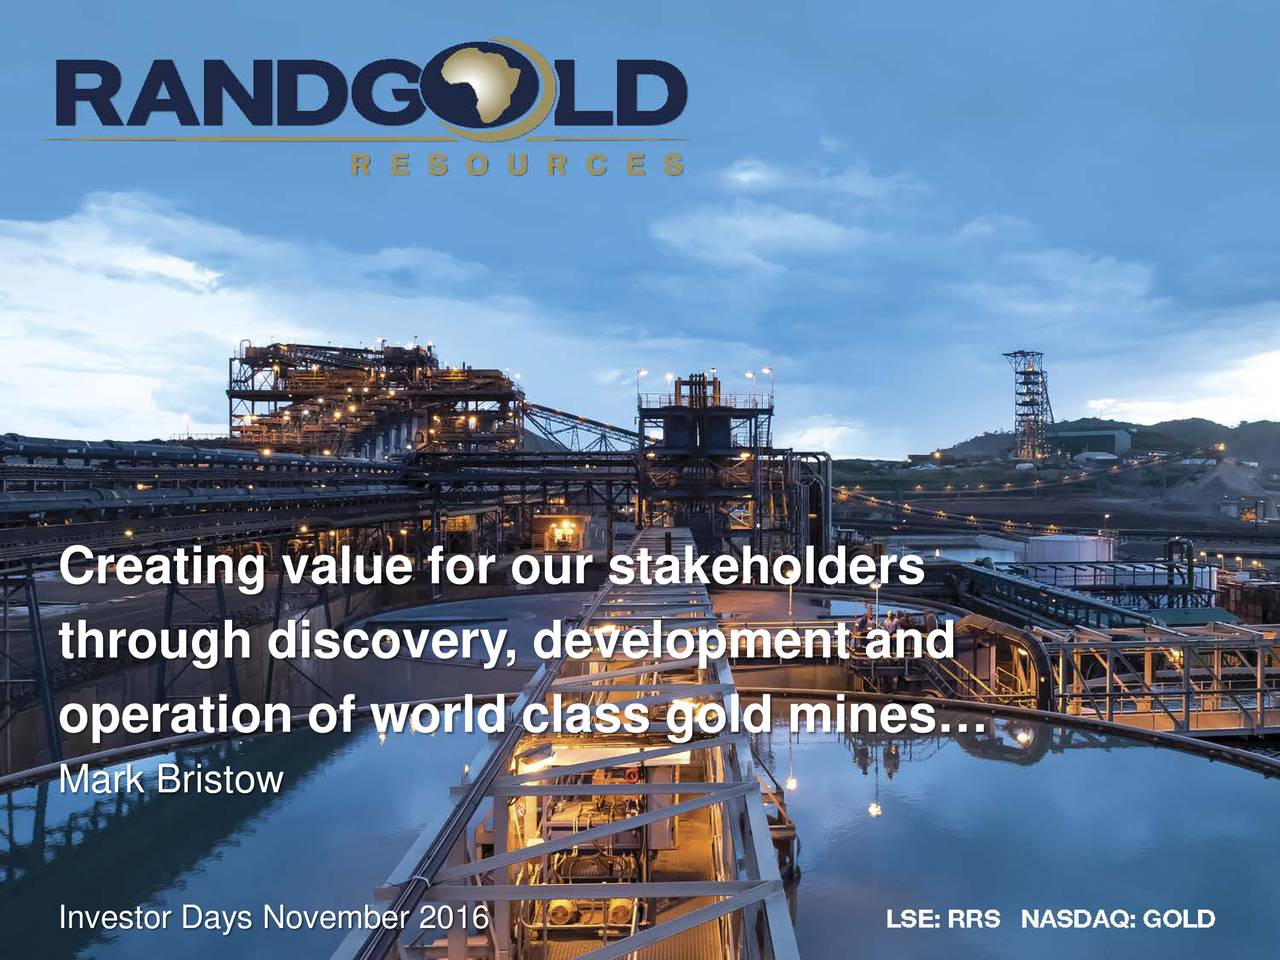 through discovery, development and operation of world class gold mines Mark Bristow Investor Days November 2016